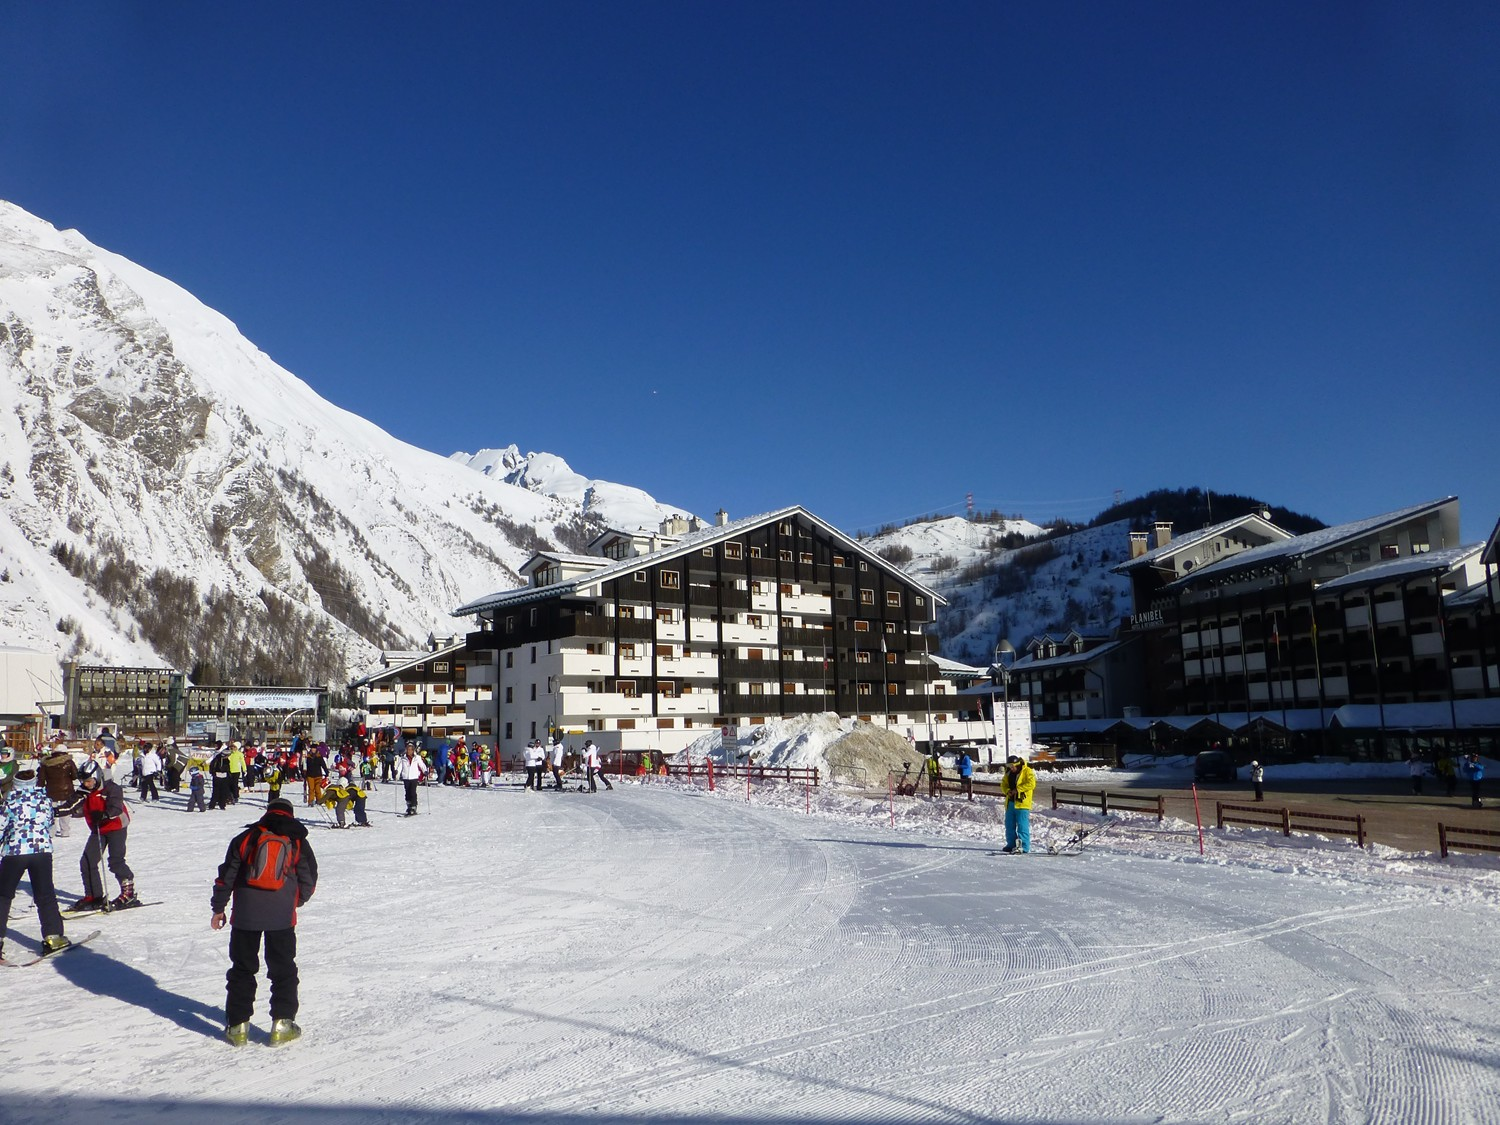 La Thuile Italy  city photo : Skiing in La Thuile Italy | Helvellyn's Blog